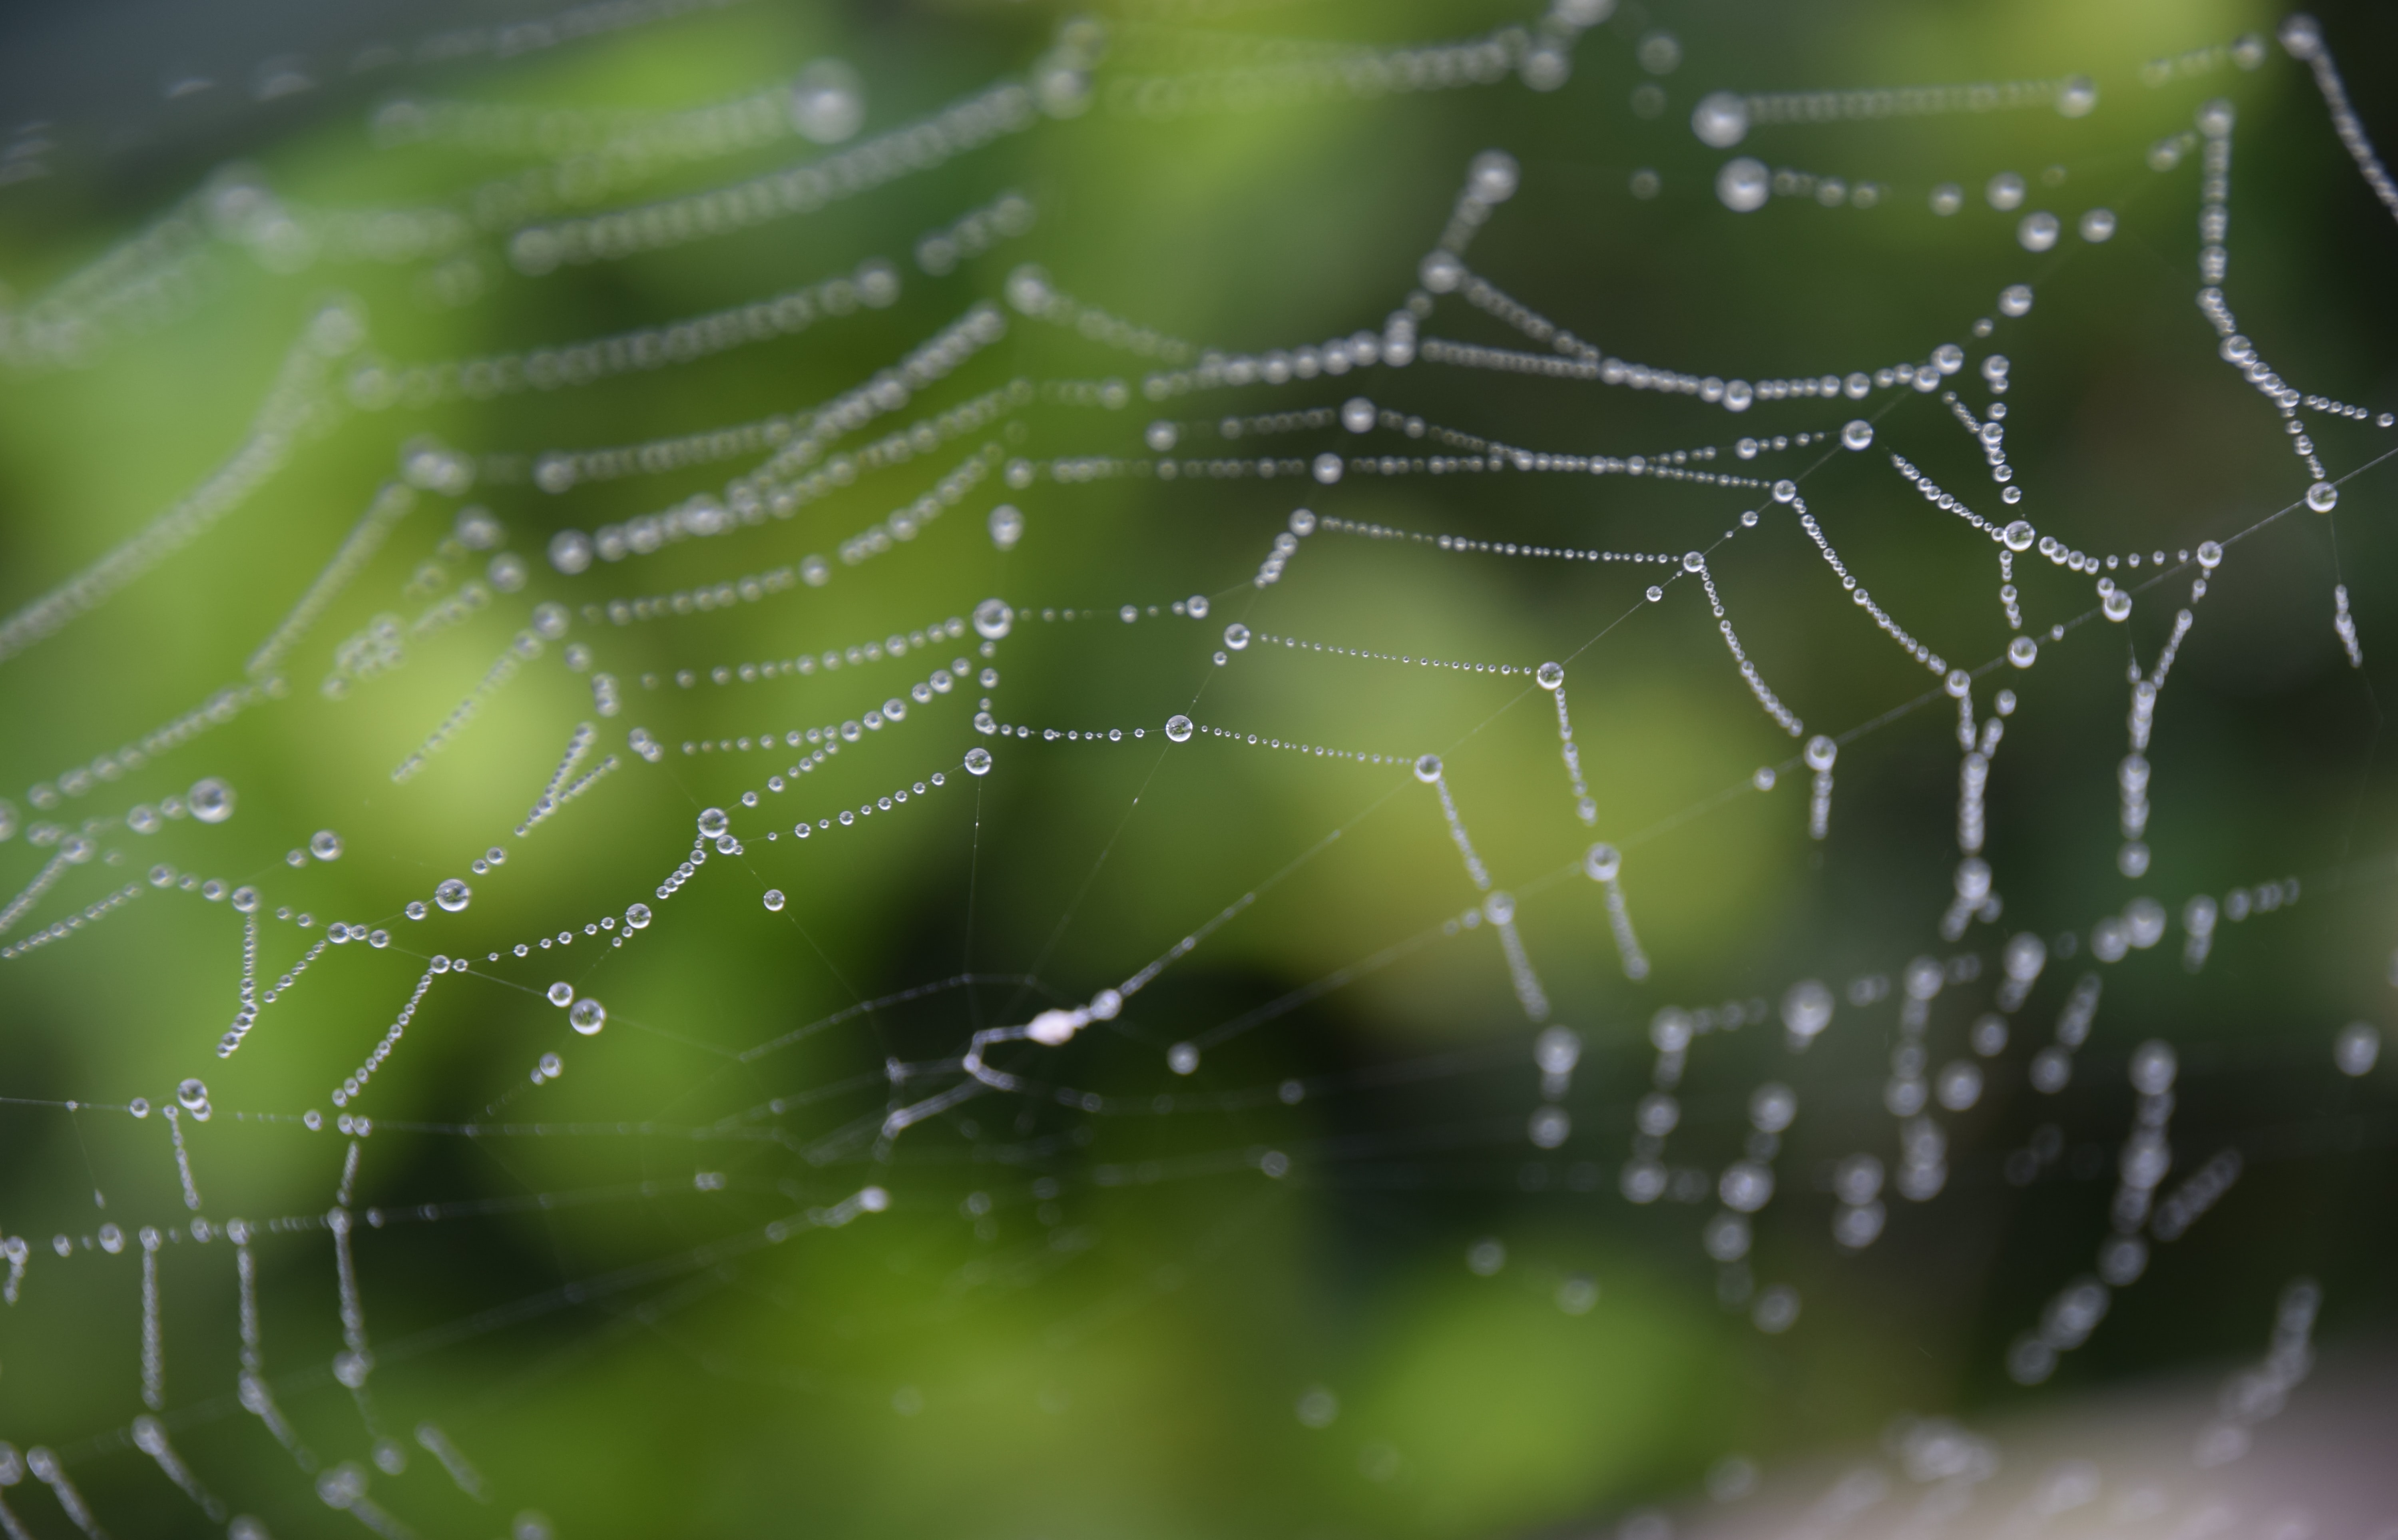 The Web of Love - a picture of a spider's web